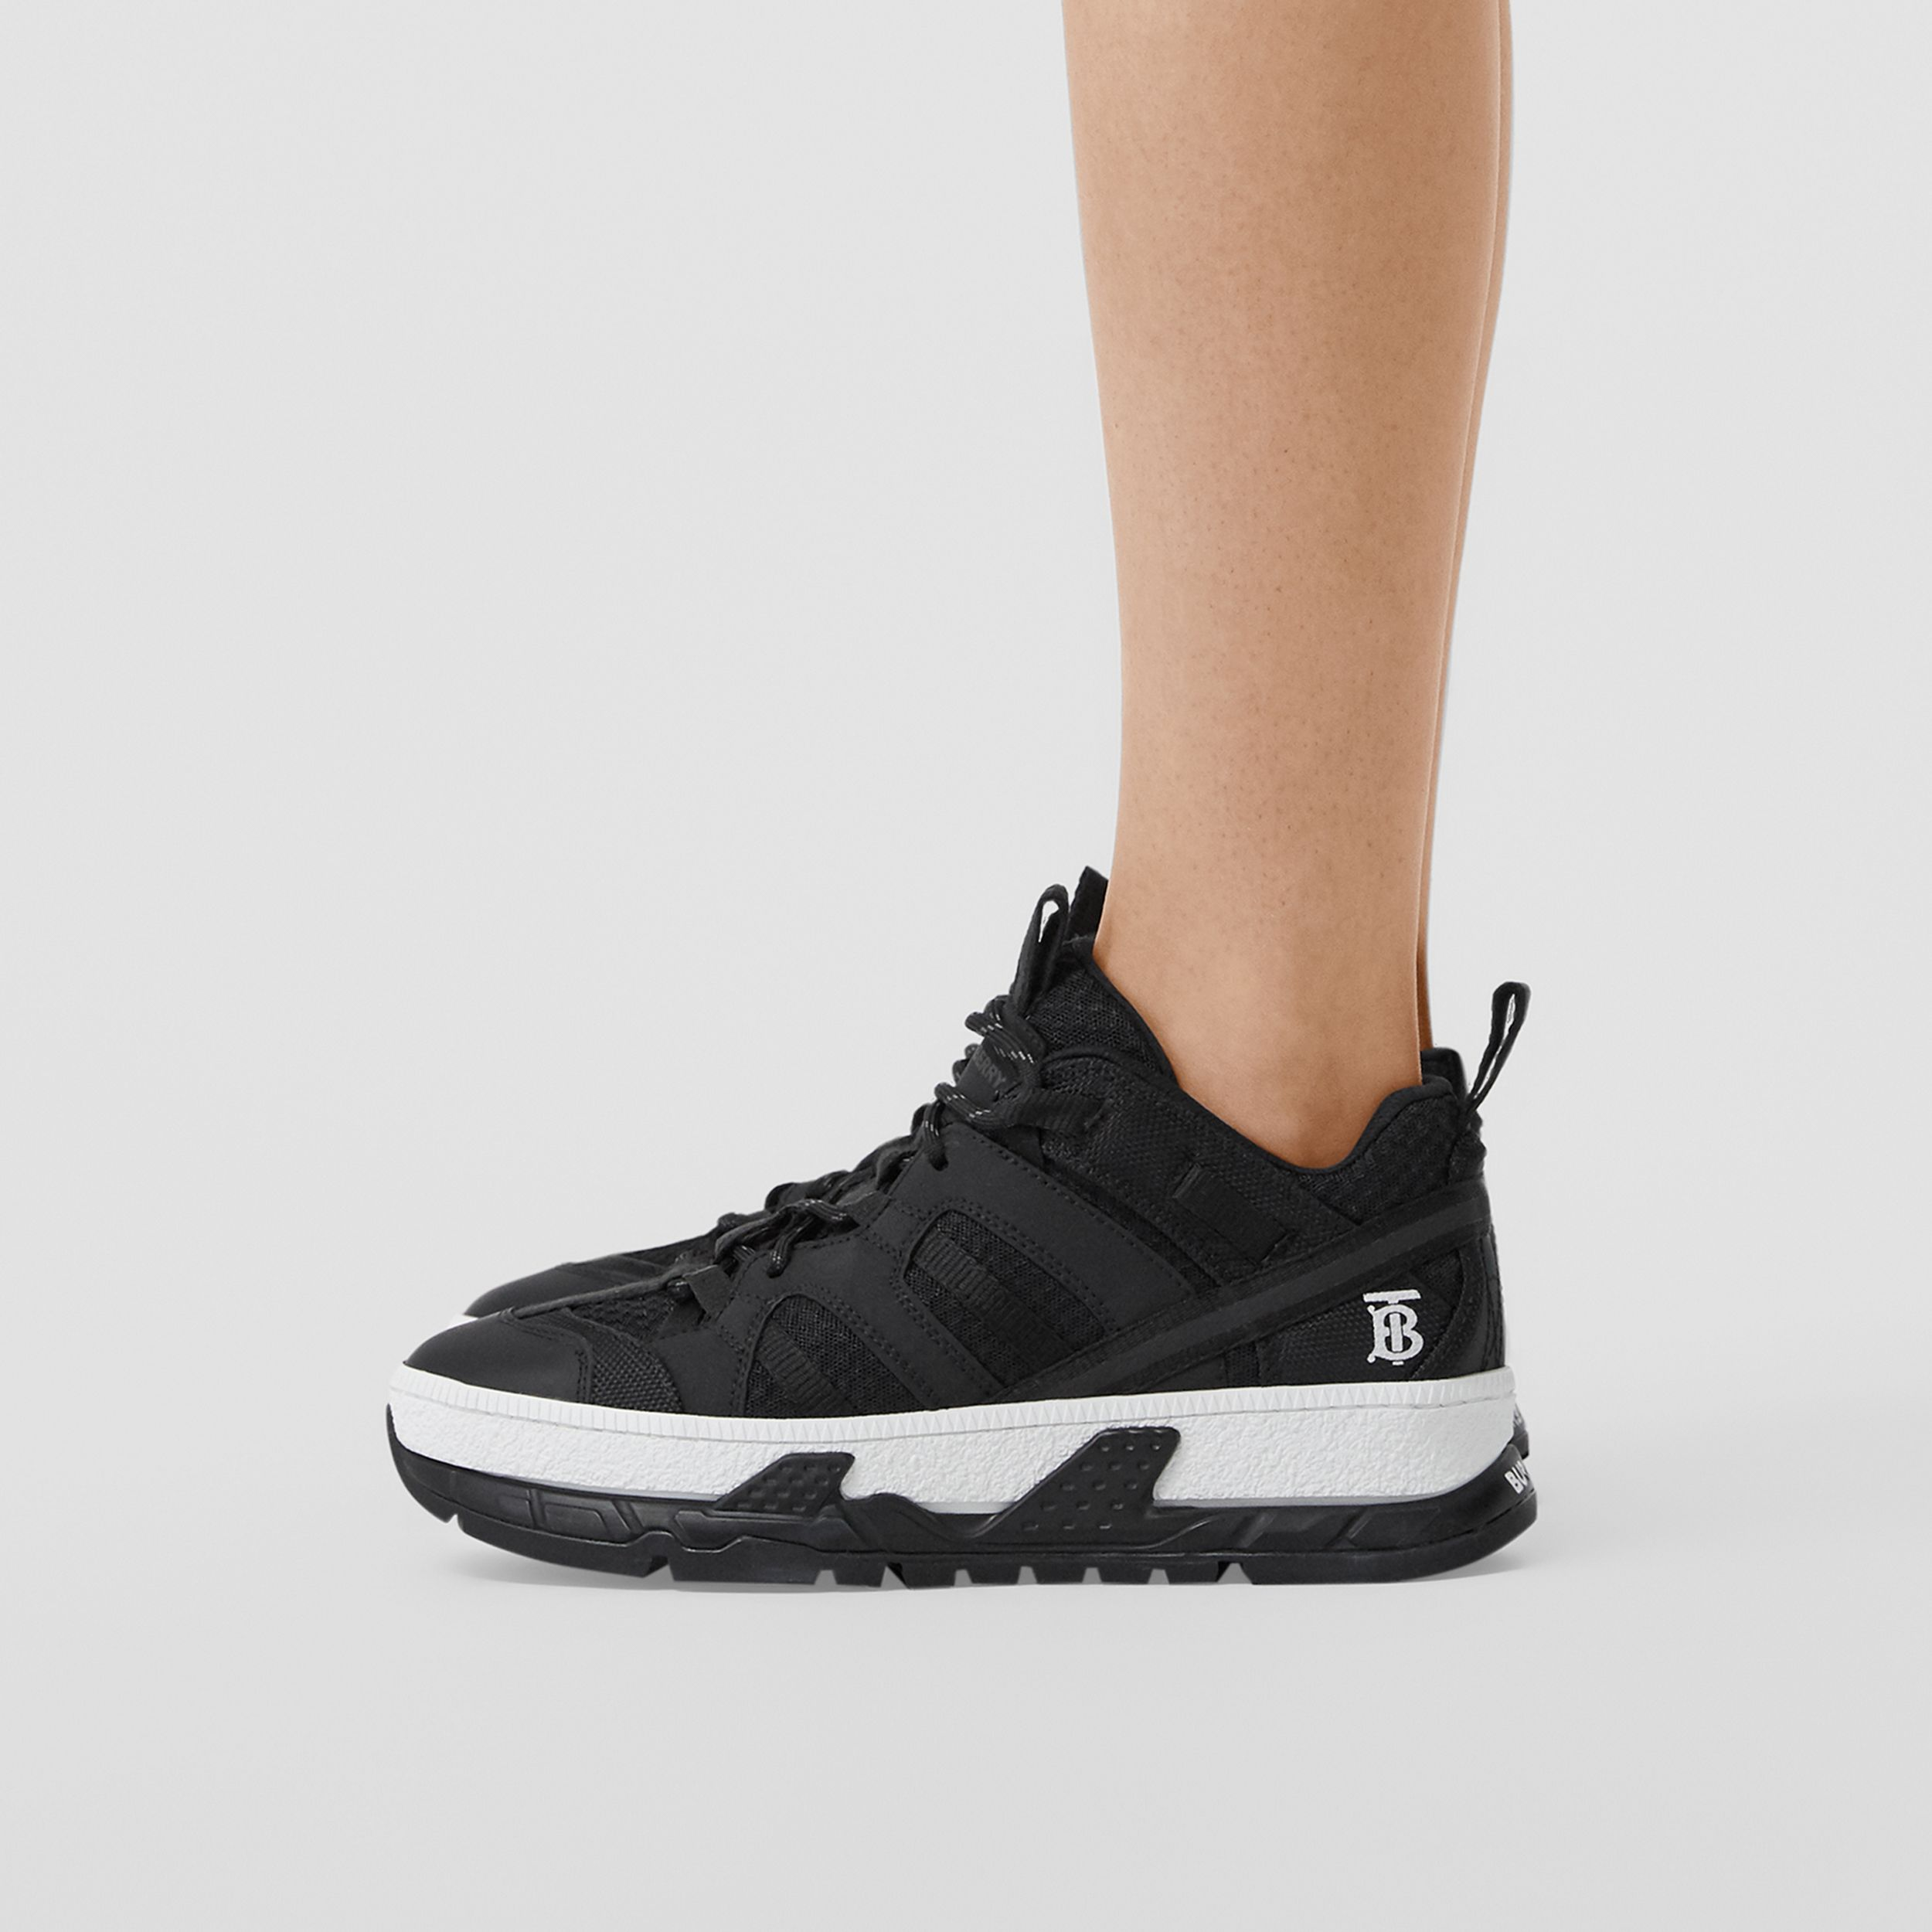 Mesh and Nubuck Union Sneakers in Black - Women | Burberry - 3